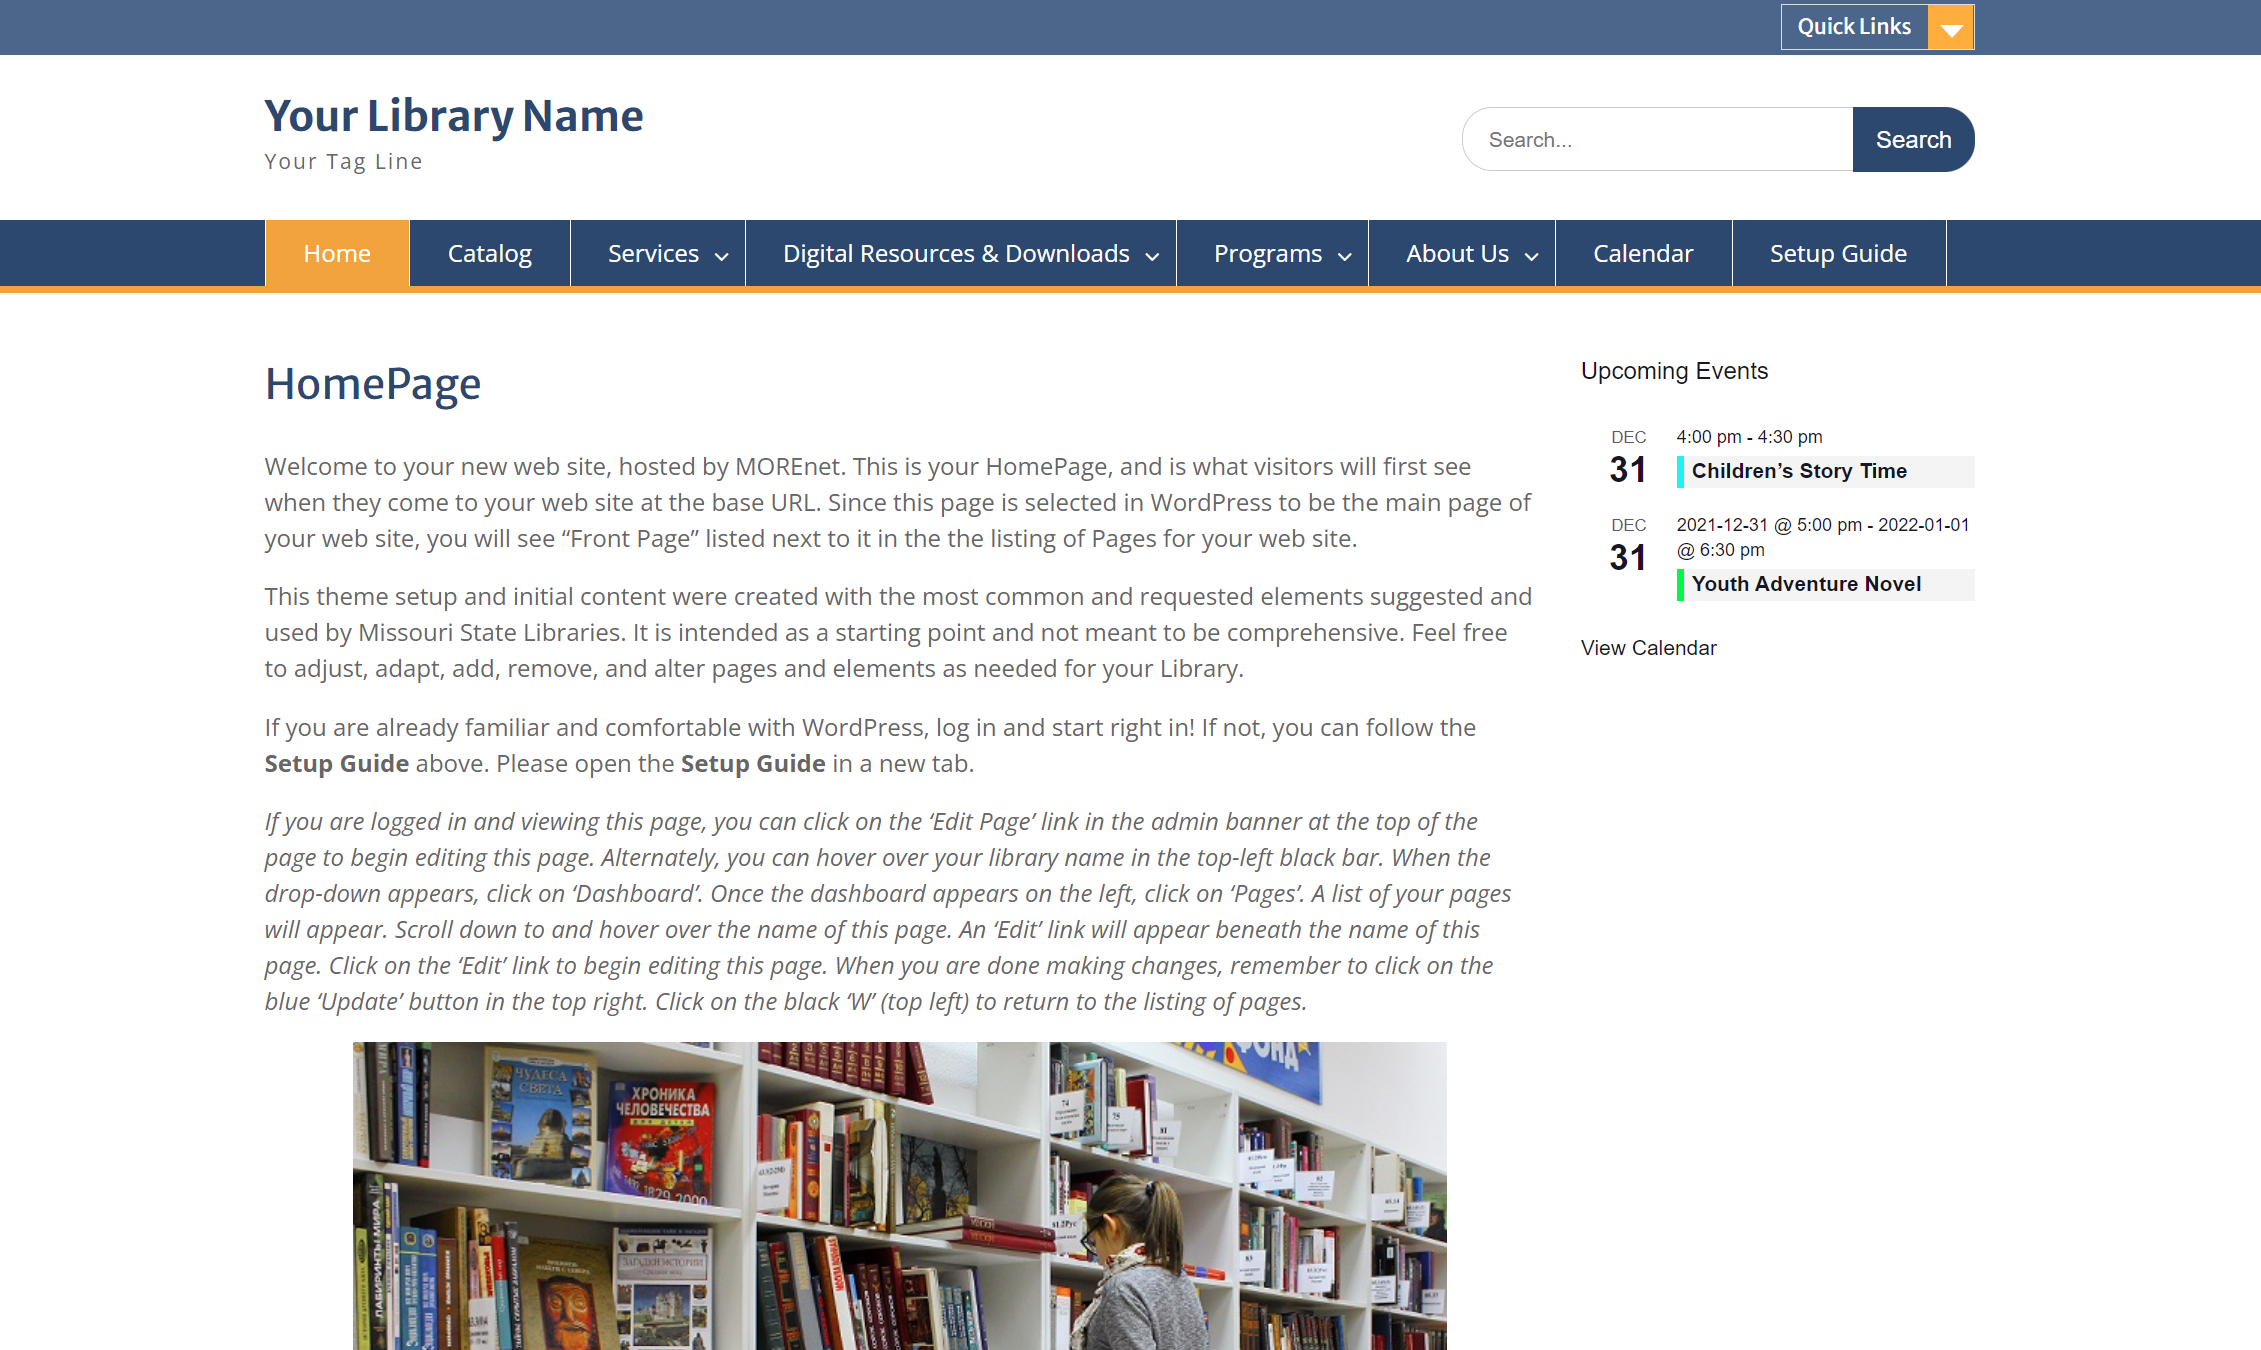 Third Library Template